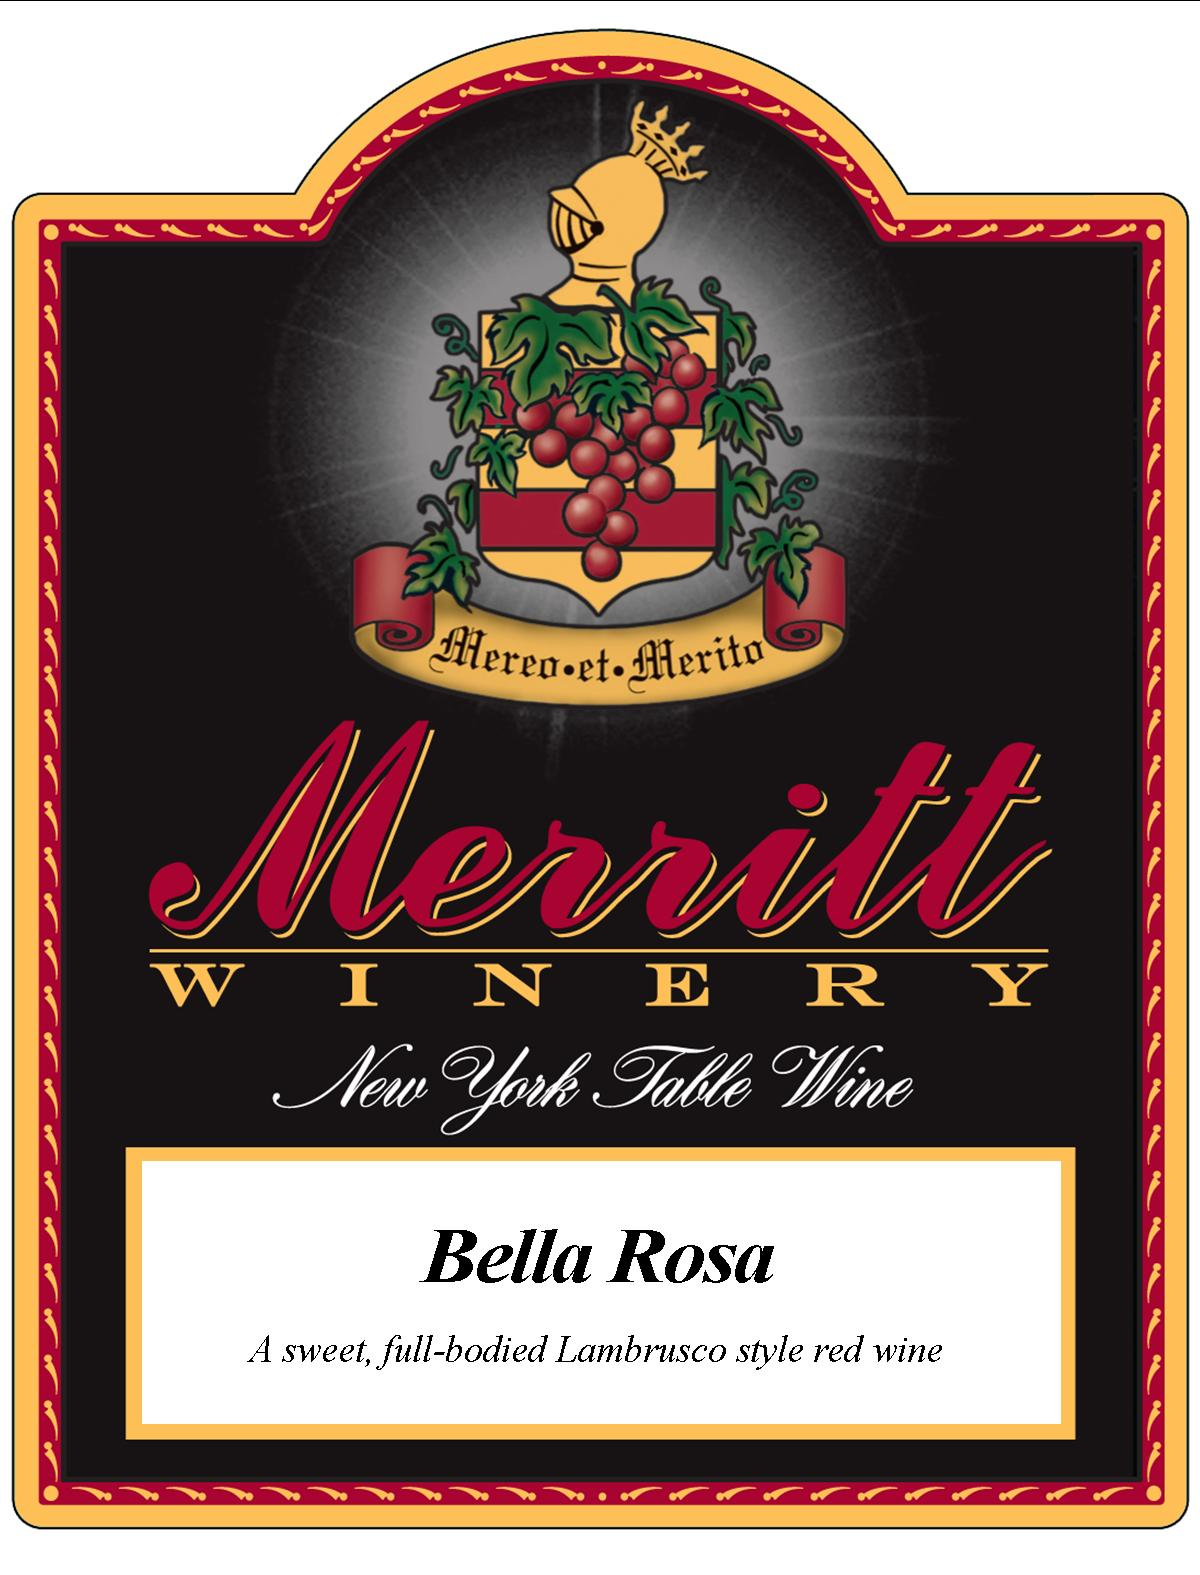 Bella Rosa Merritt Estate Winery Save Water Drink Merritt Wines